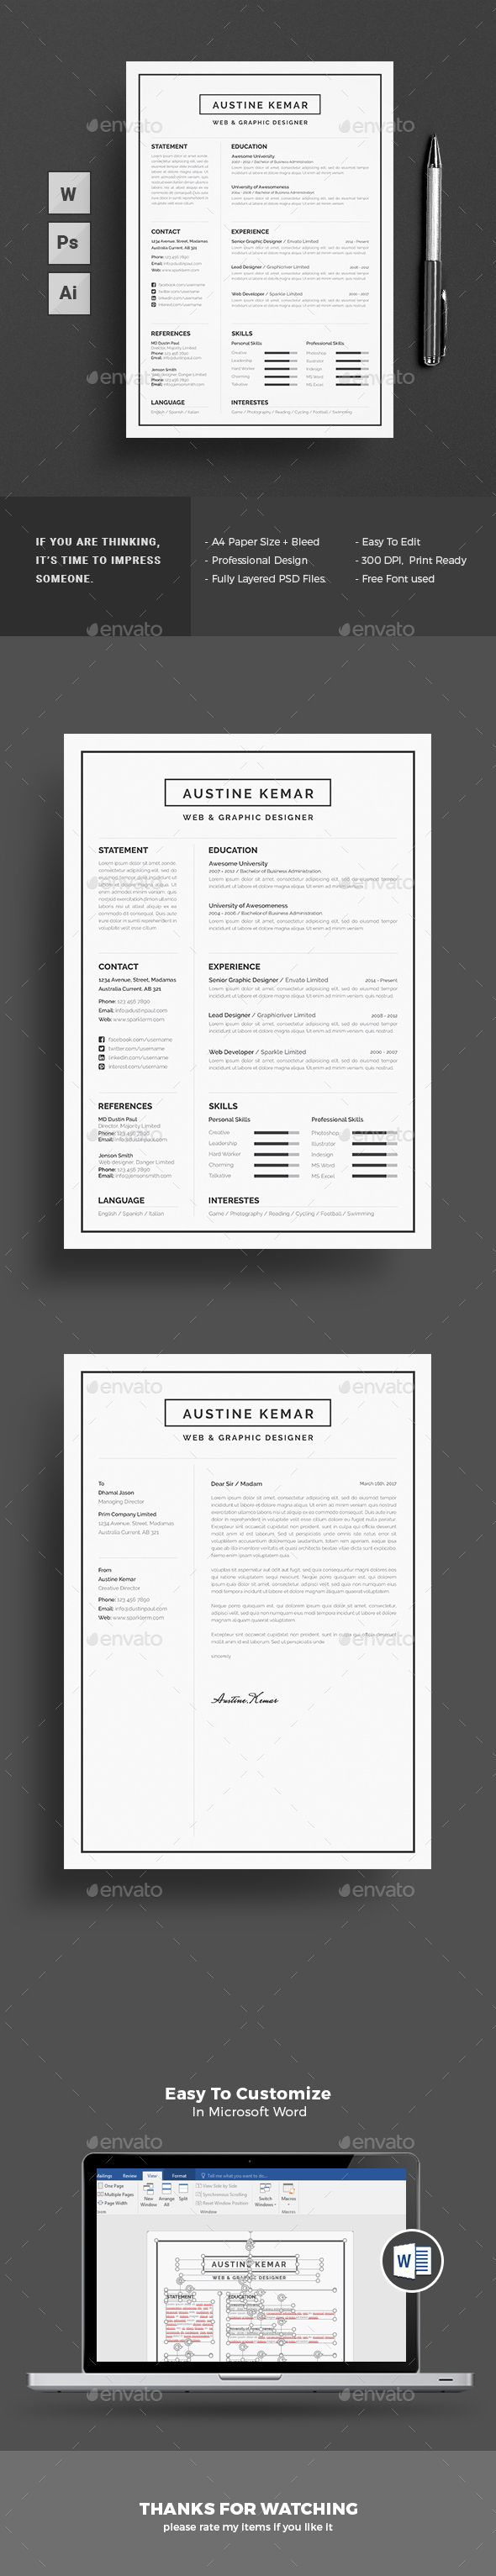 Resume 25 best Resume CV images